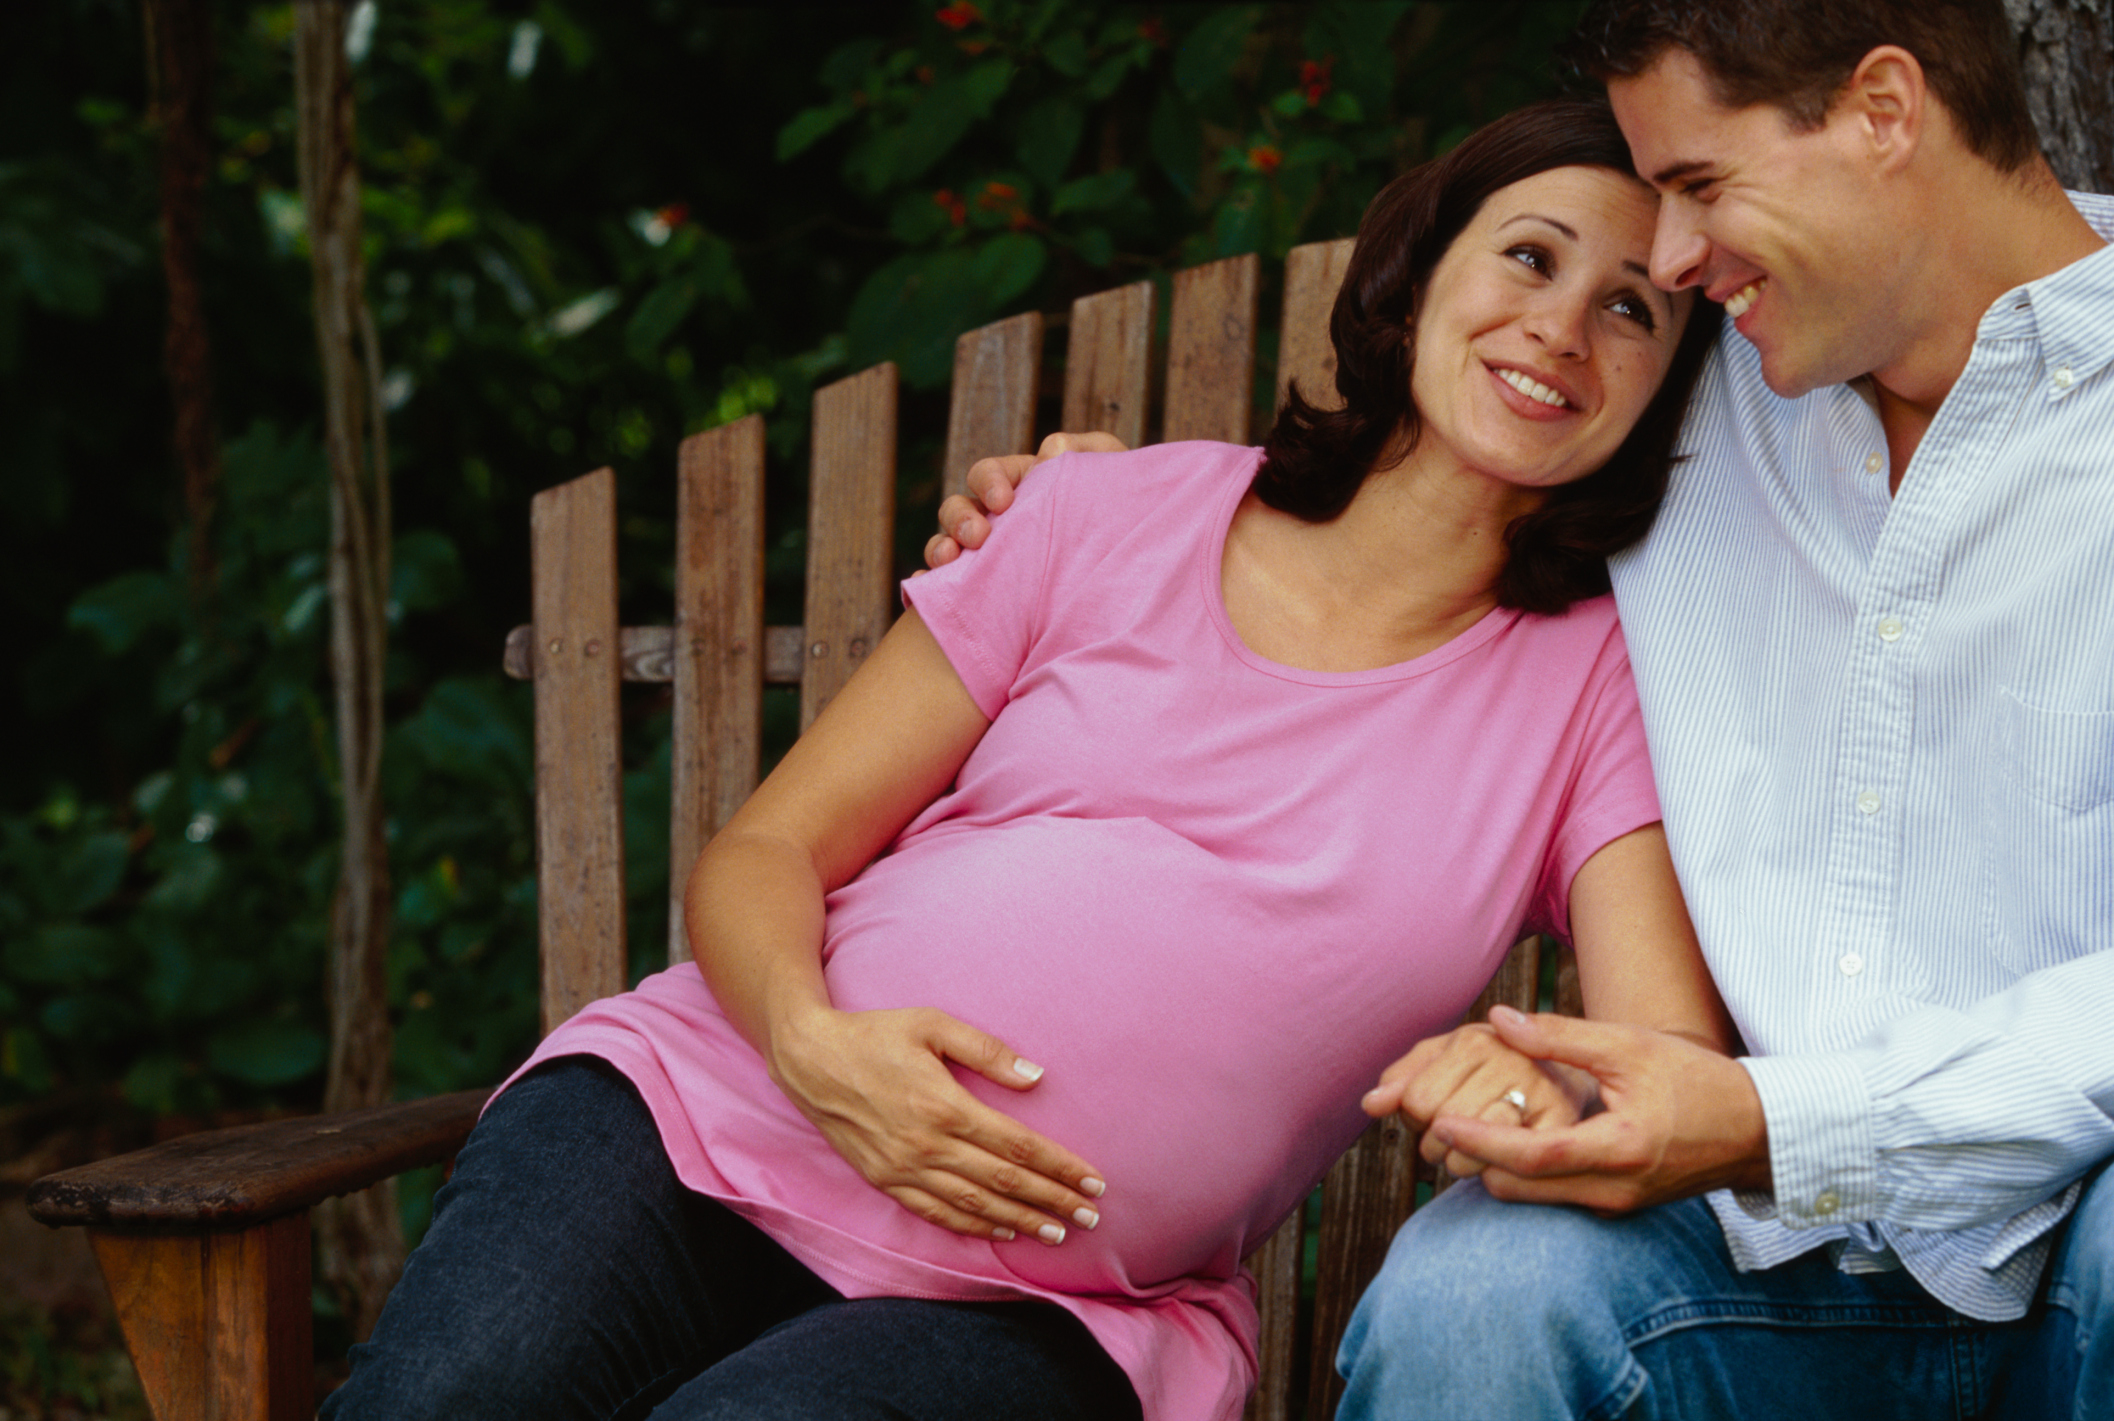 Pregnant wife: how to behave husband